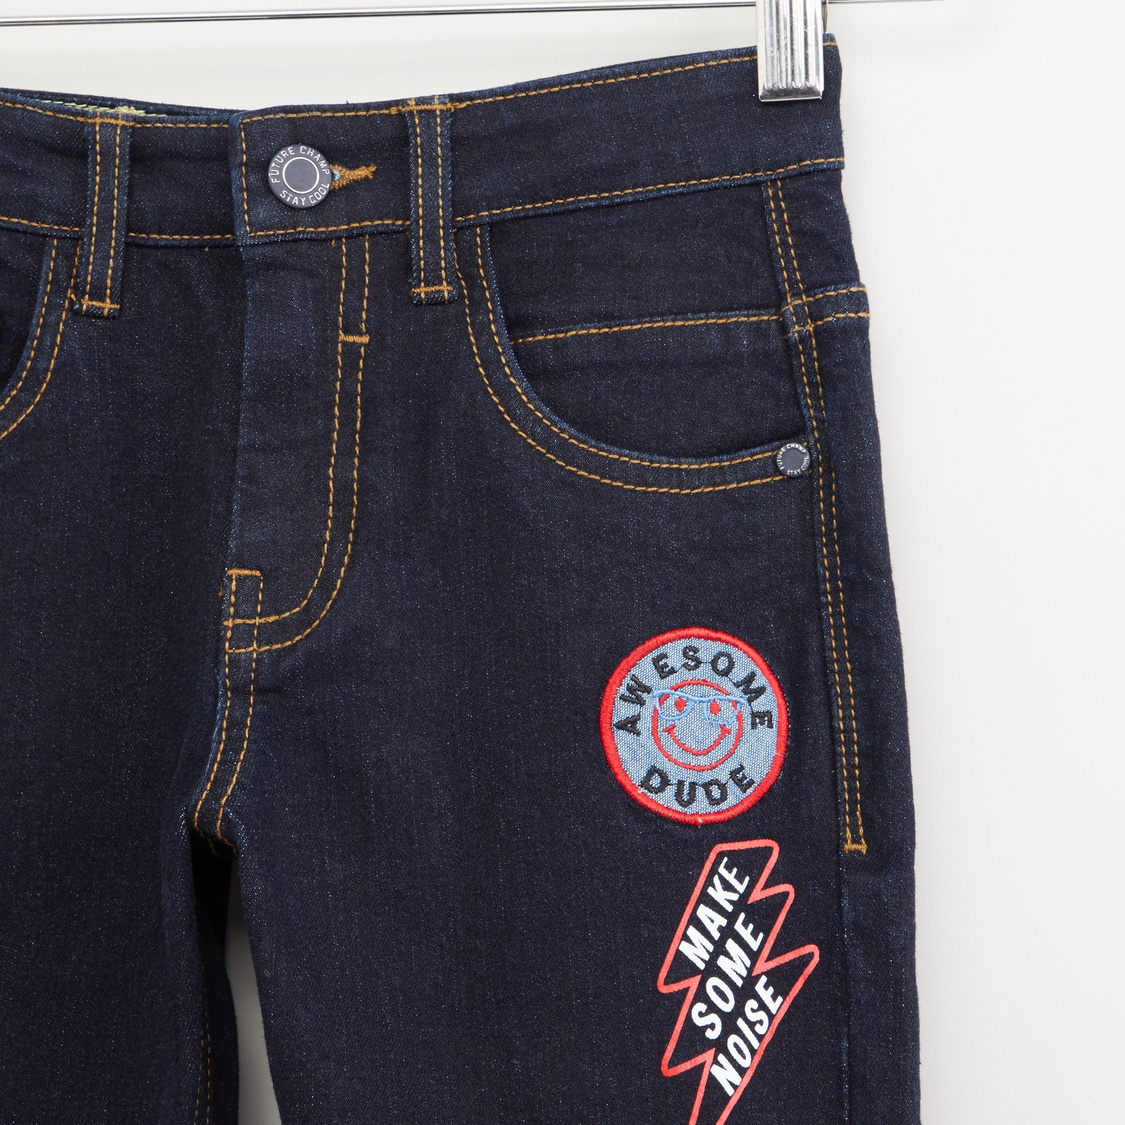 Printed Jeans with Belt Loops and Pocket Detail